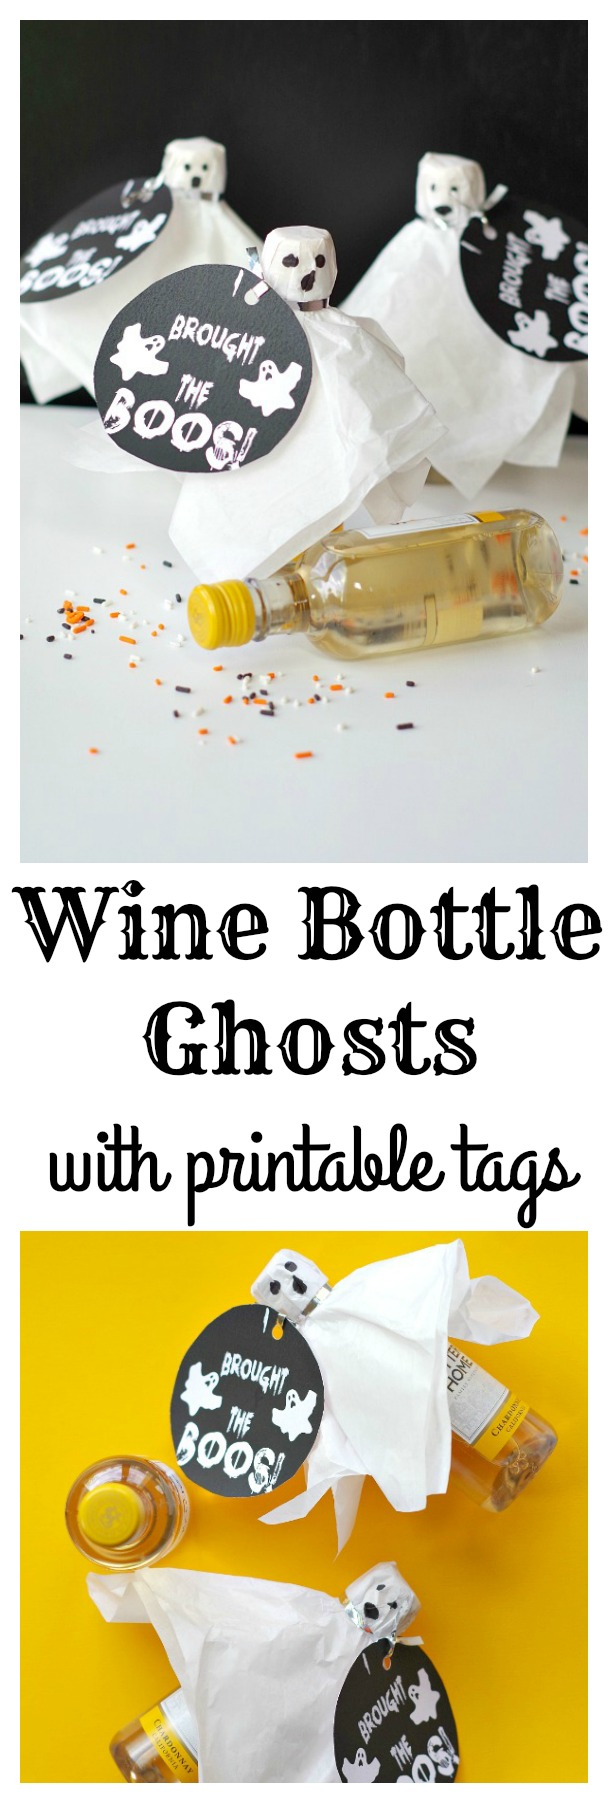 How to make simple wine bottle ghosts with free printable tags!